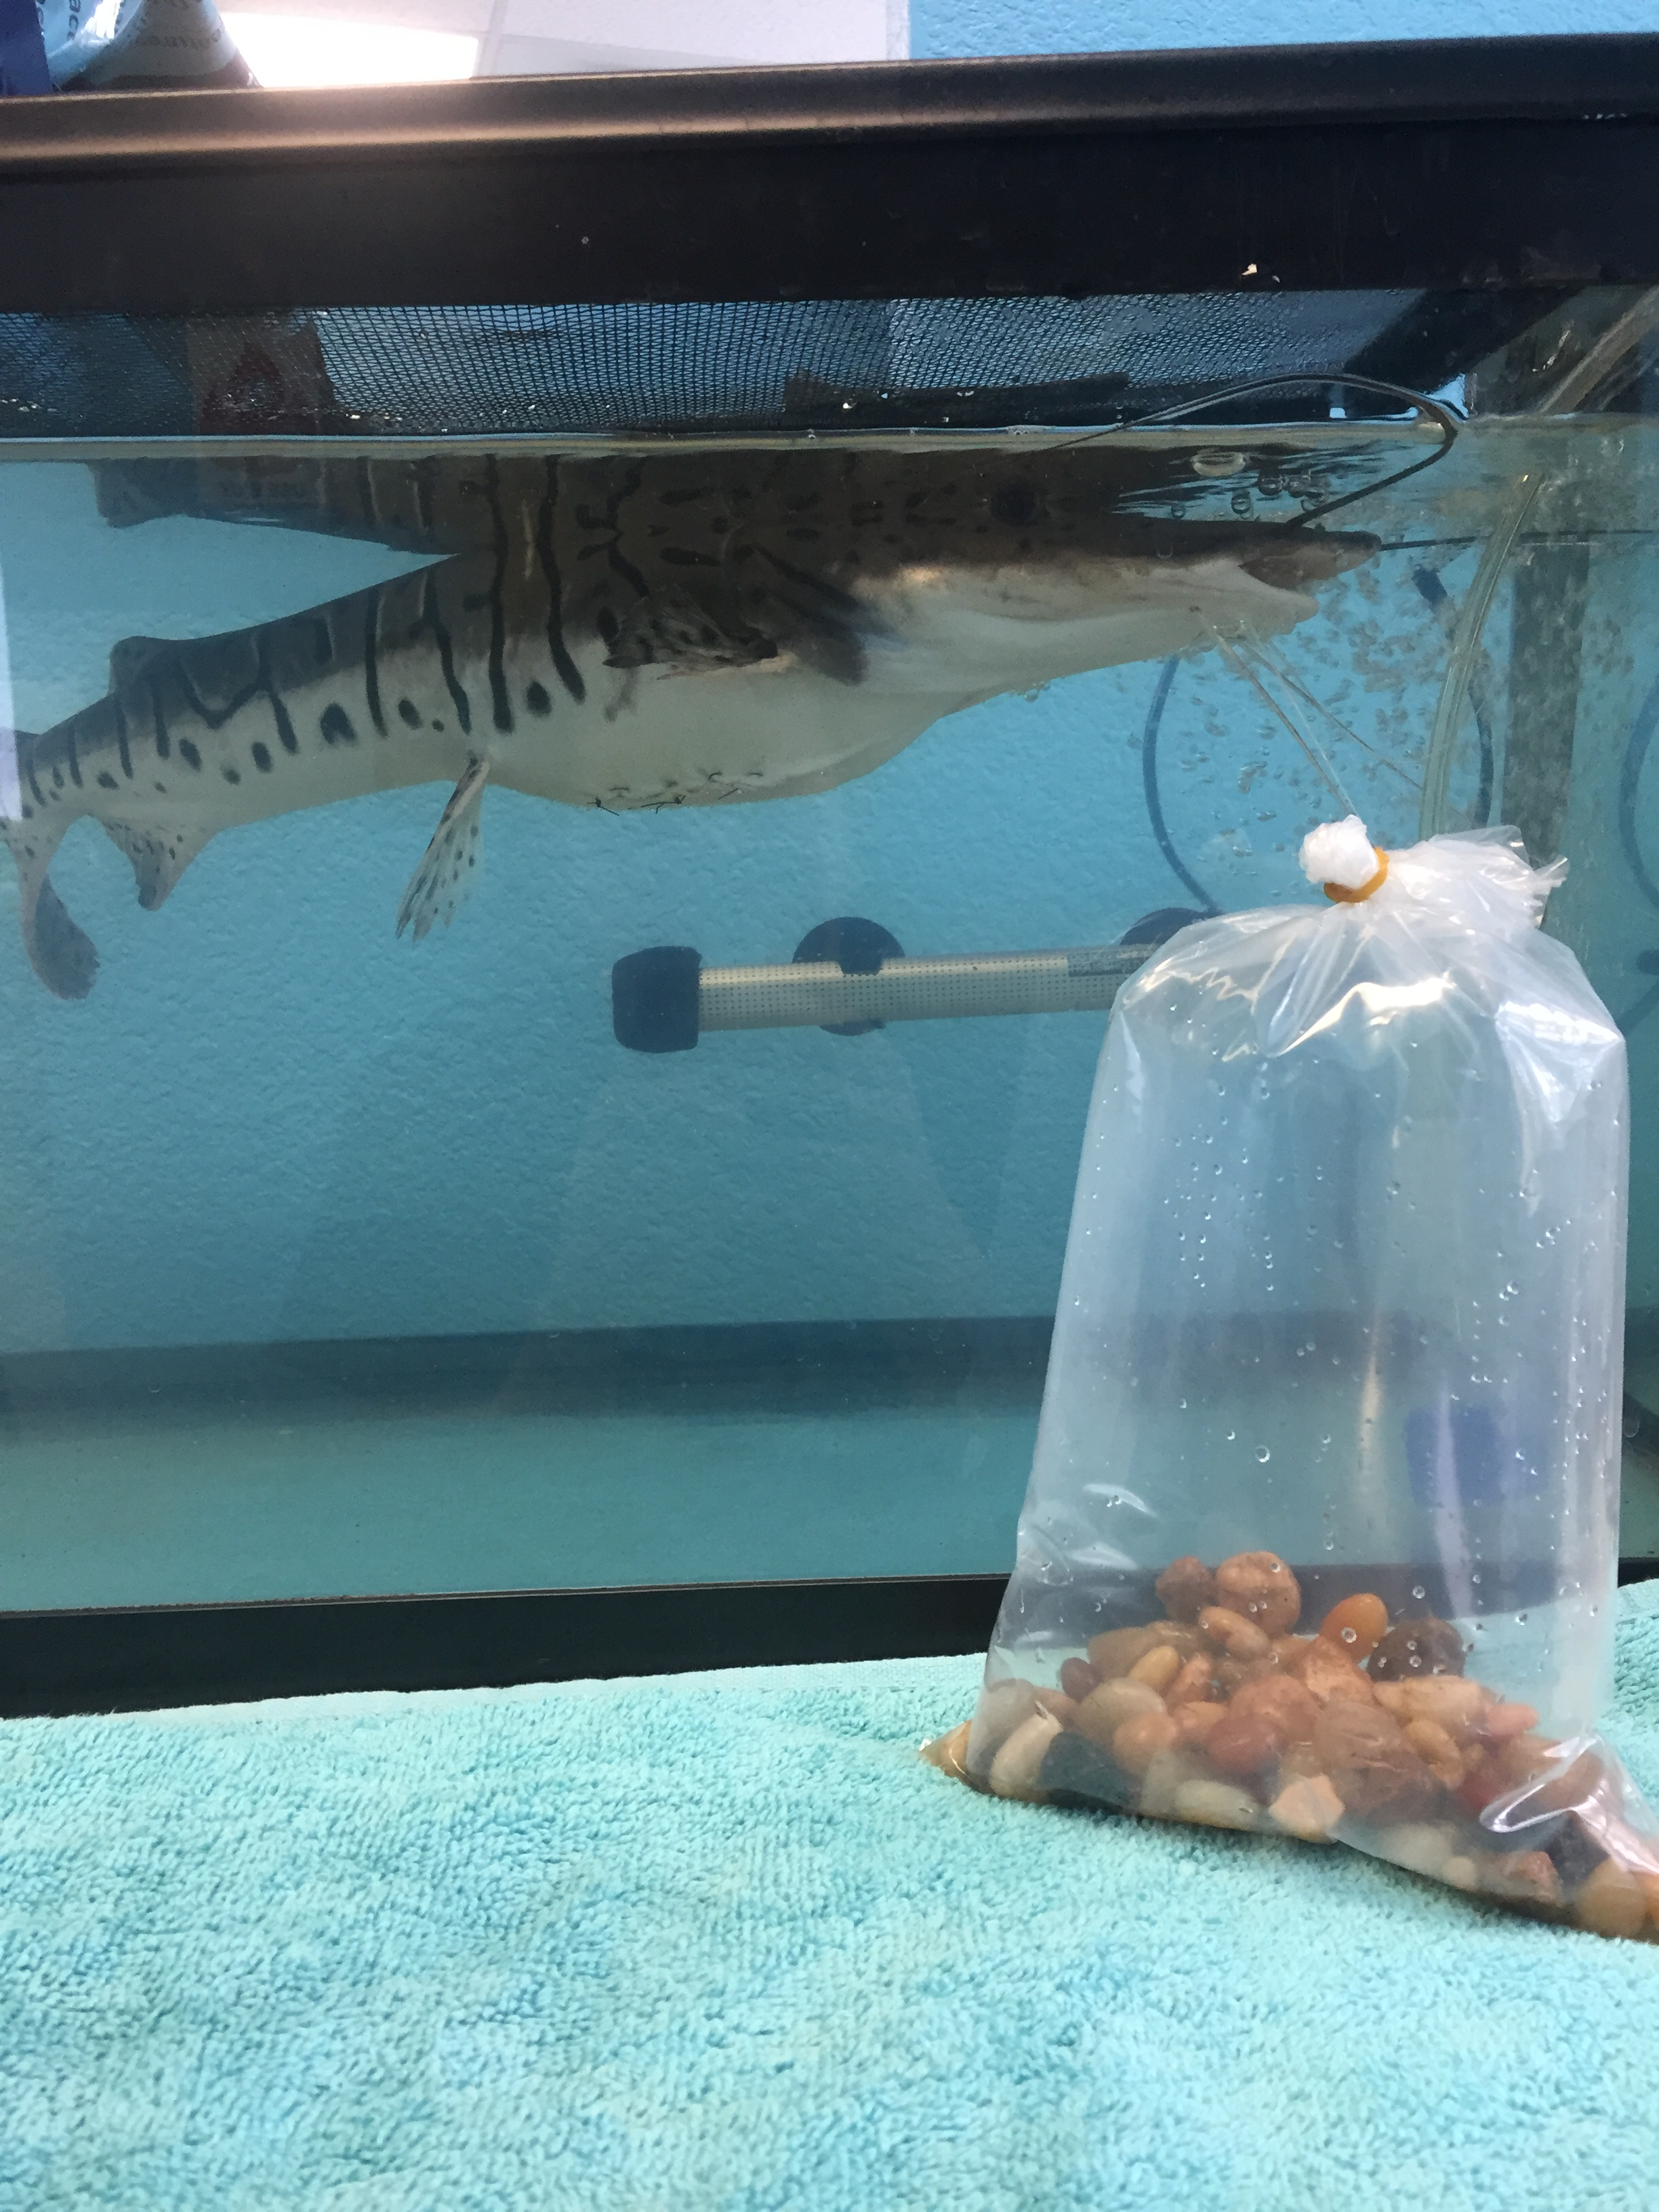 Freshwater aquarium fish massachusetts - And Here Rocky Is Post Surgery In His Recovery Tank He Floats A Lot Better Now In Total We Took Out 2 3 Lbs Of Rocks Rocky S Sutures Will Be In For